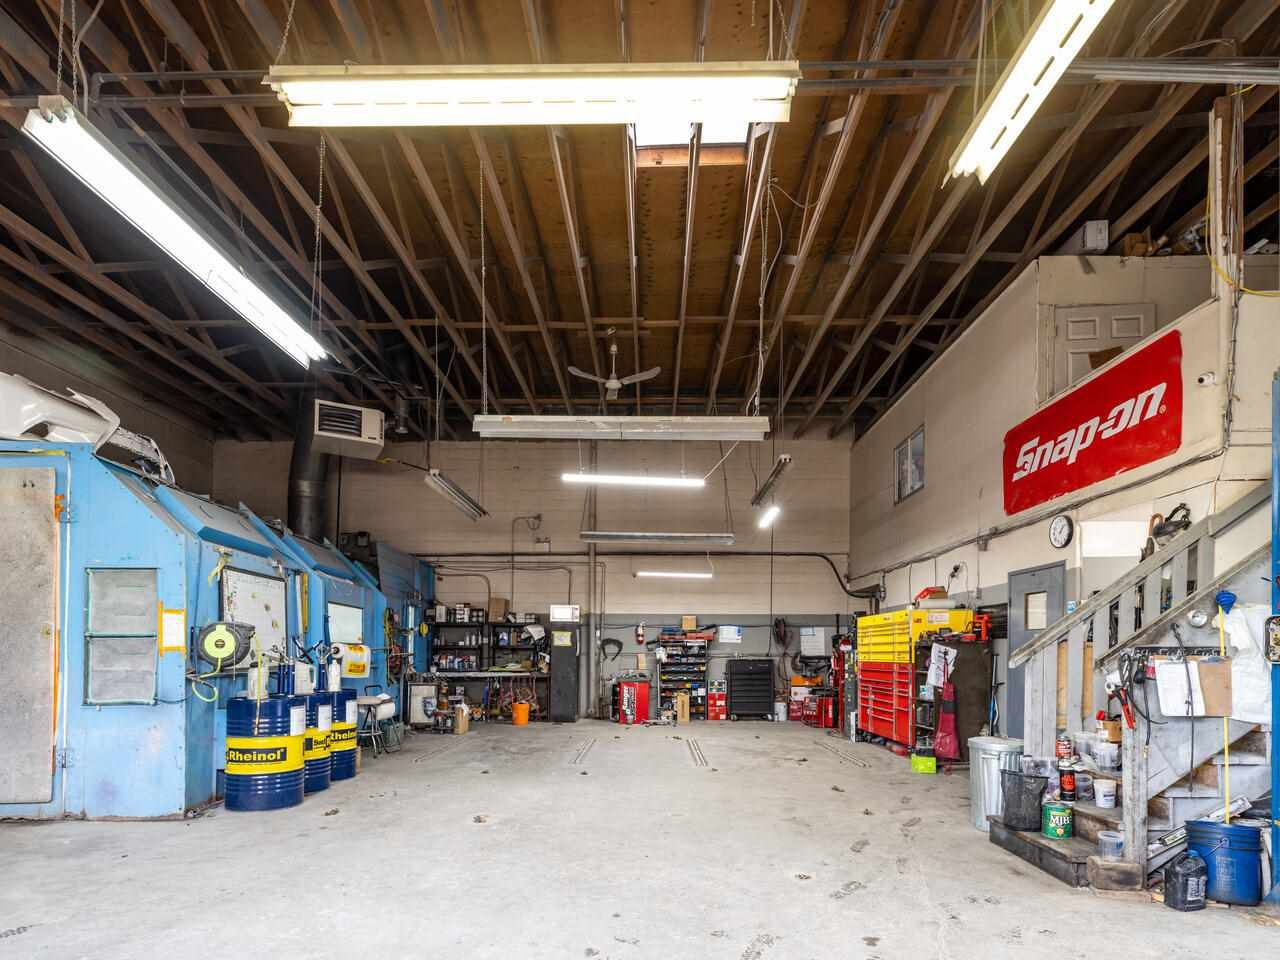 """Main Photo: 5368 LANE ST. Street in Burnaby: Metrotown Business for sale in """"HTV Auto Body"""" (Burnaby South)  : MLS®# C8037545"""